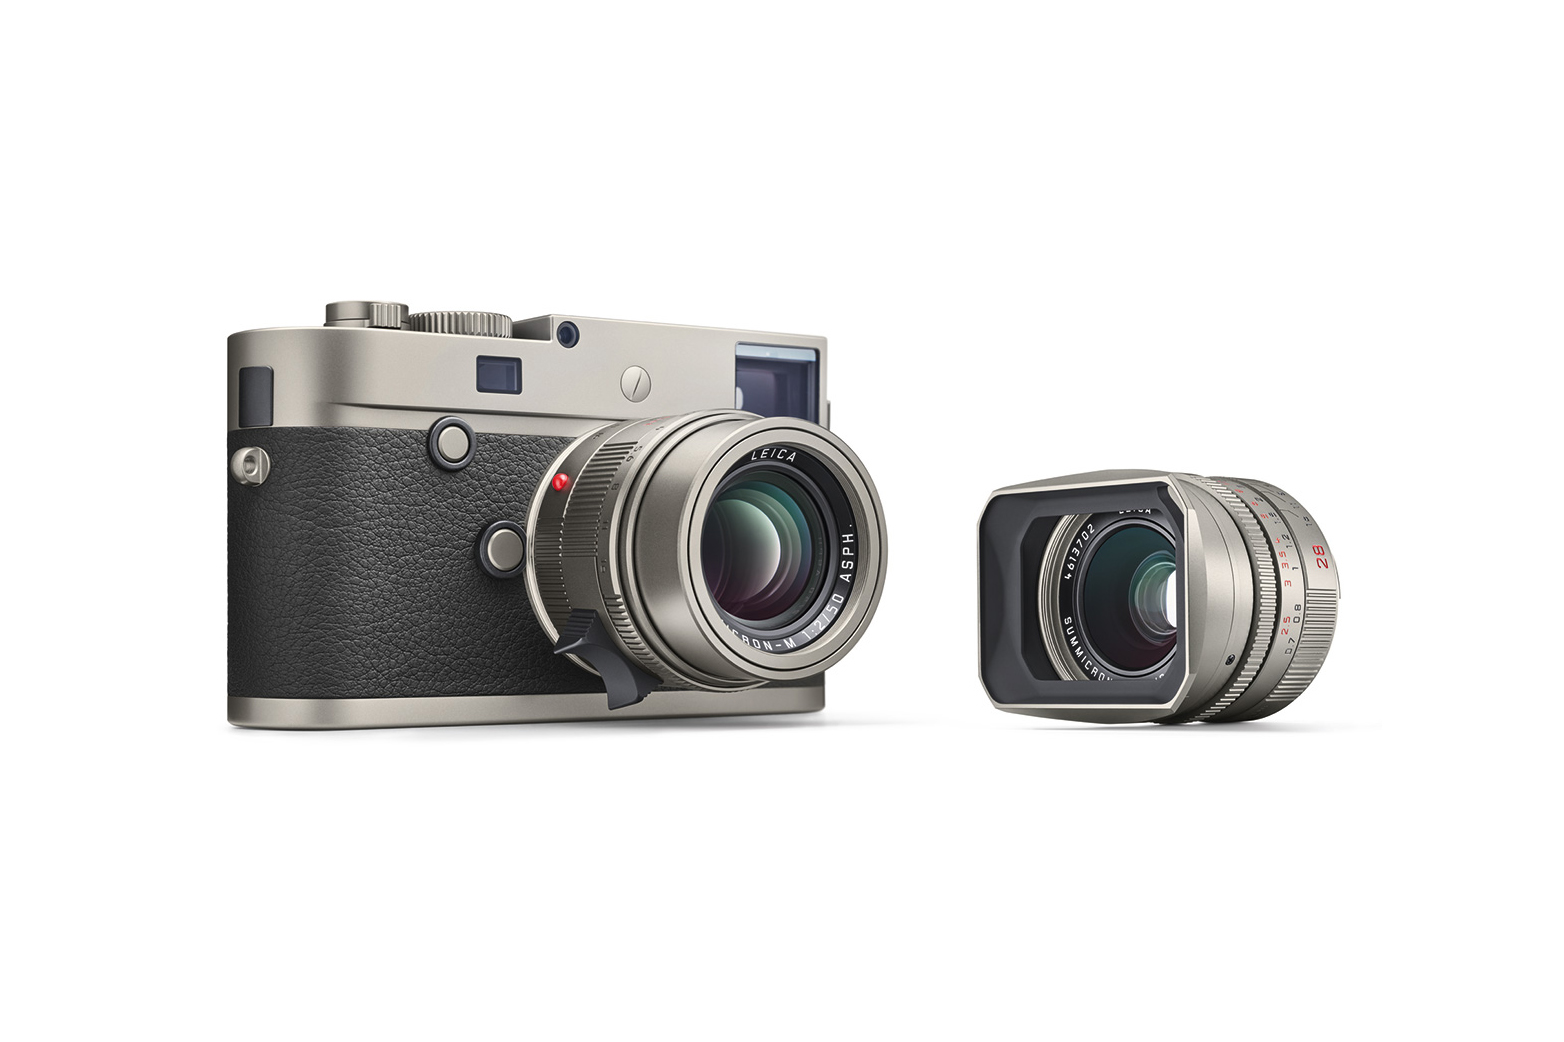 Leica M P Typ 240 Titanium Set With Lenses - 1312781